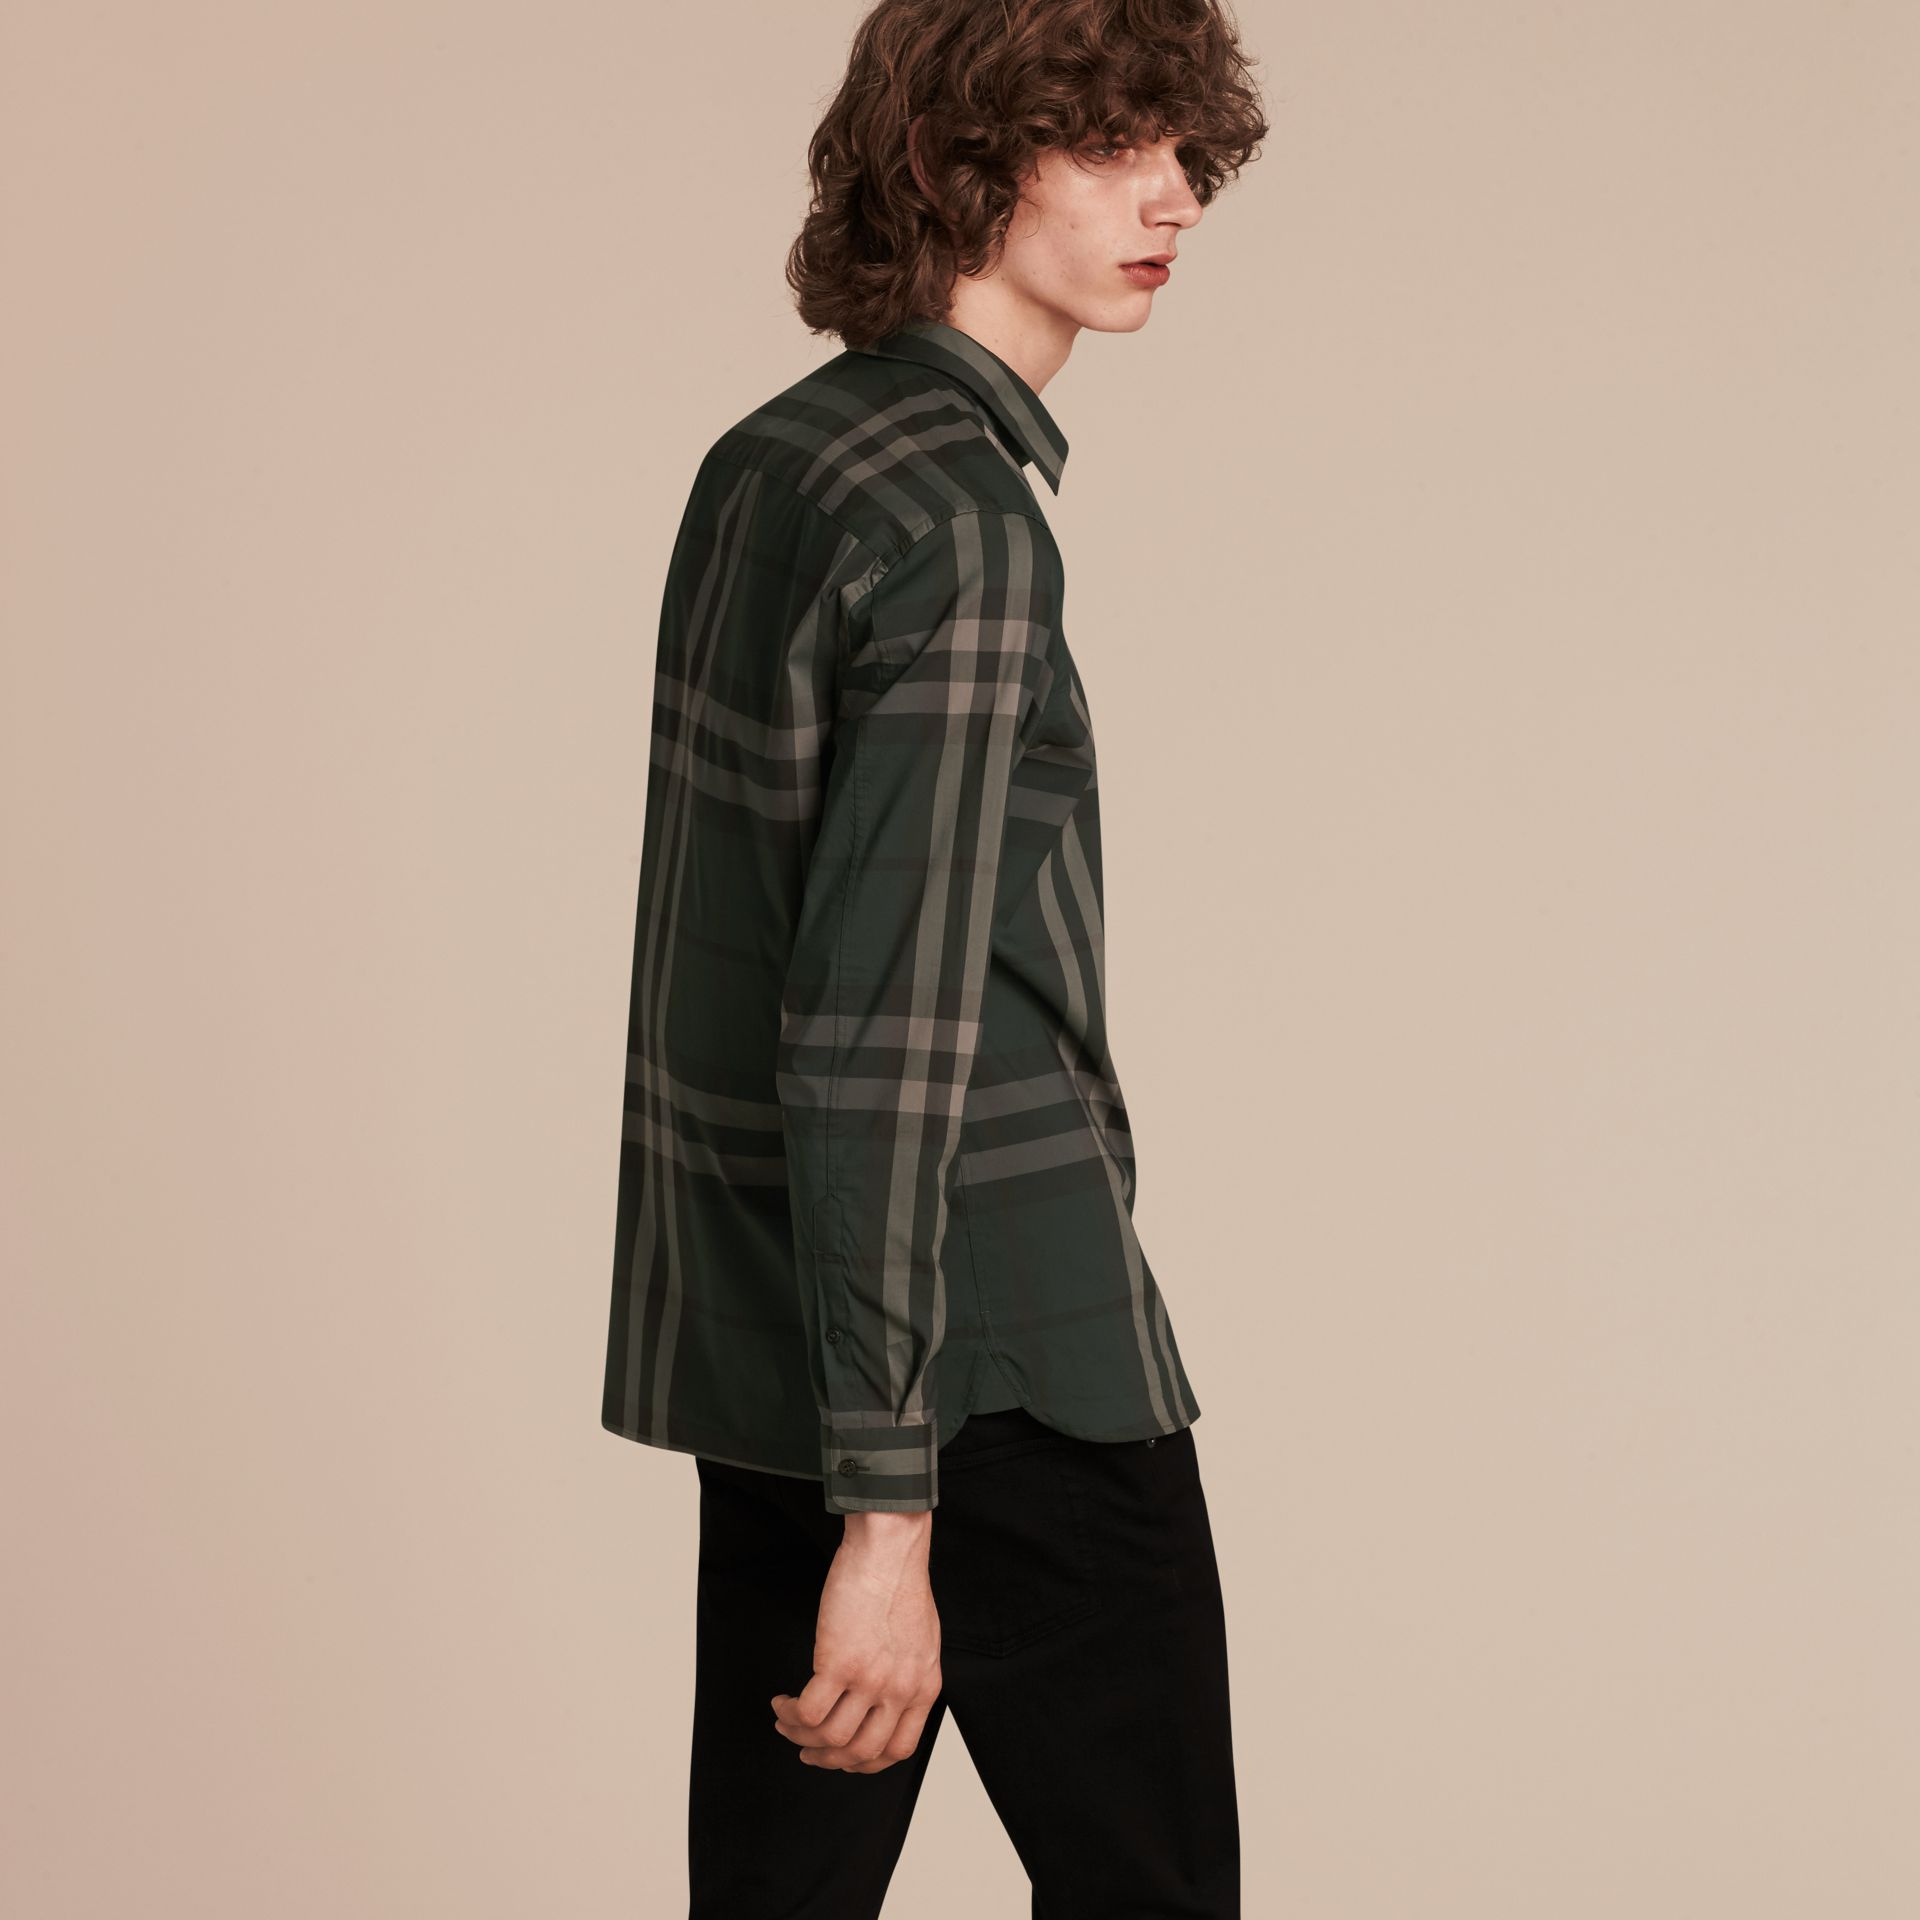 Racing green Check Stretch Cotton Shirt Racing Green - gallery image 3